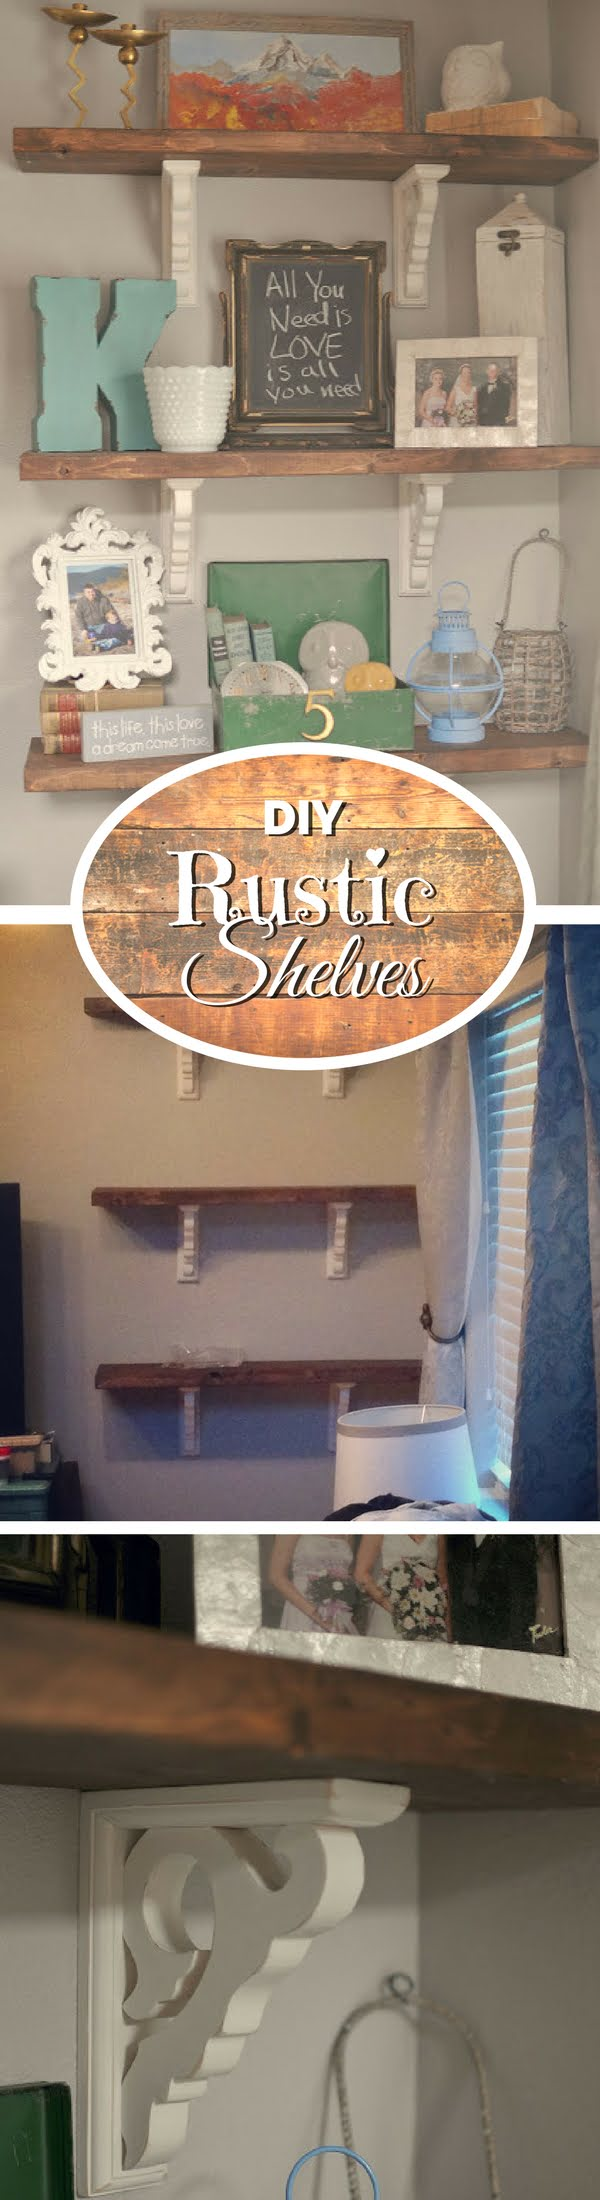 Check out how to make easy DIY rustic shelves